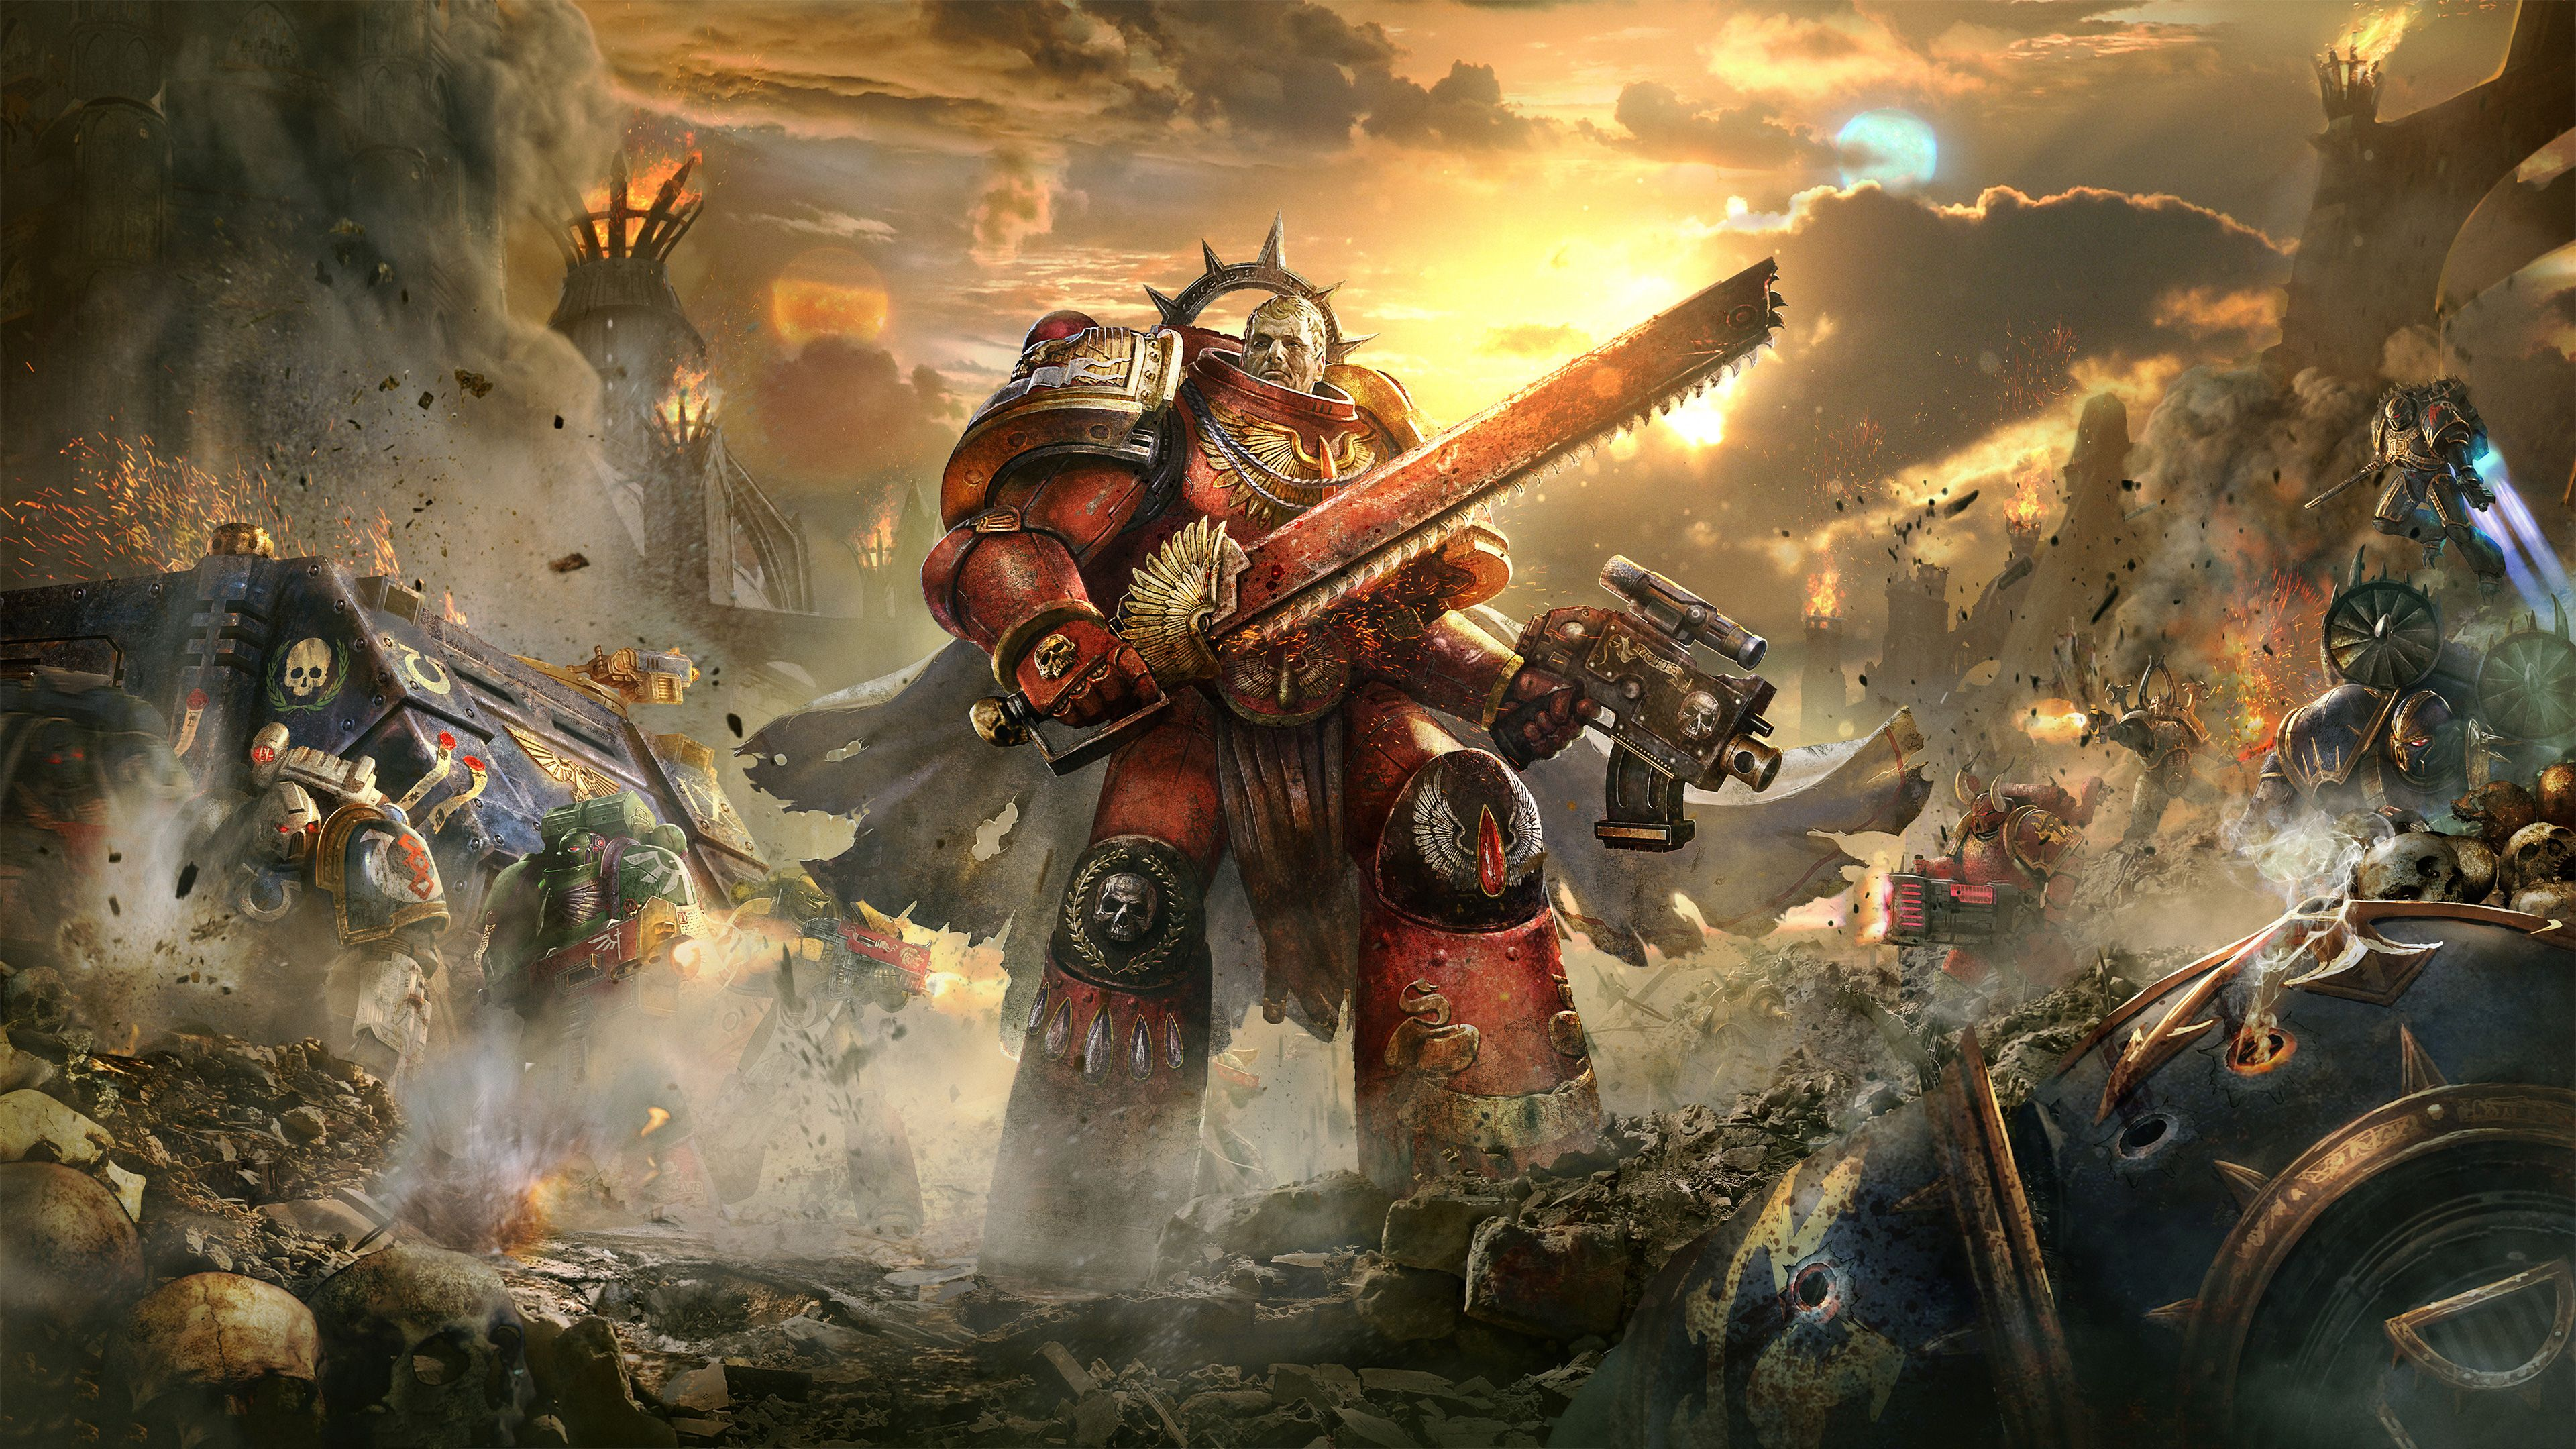 Warhammer 40000 Warhammer 40000 Dawn Of War Iii Wallpapers Pc Games Wallpapers Hd Wallpapers Games Wallpaper In 2020 Warhammer Pc Games Wallpapers Concept Art World